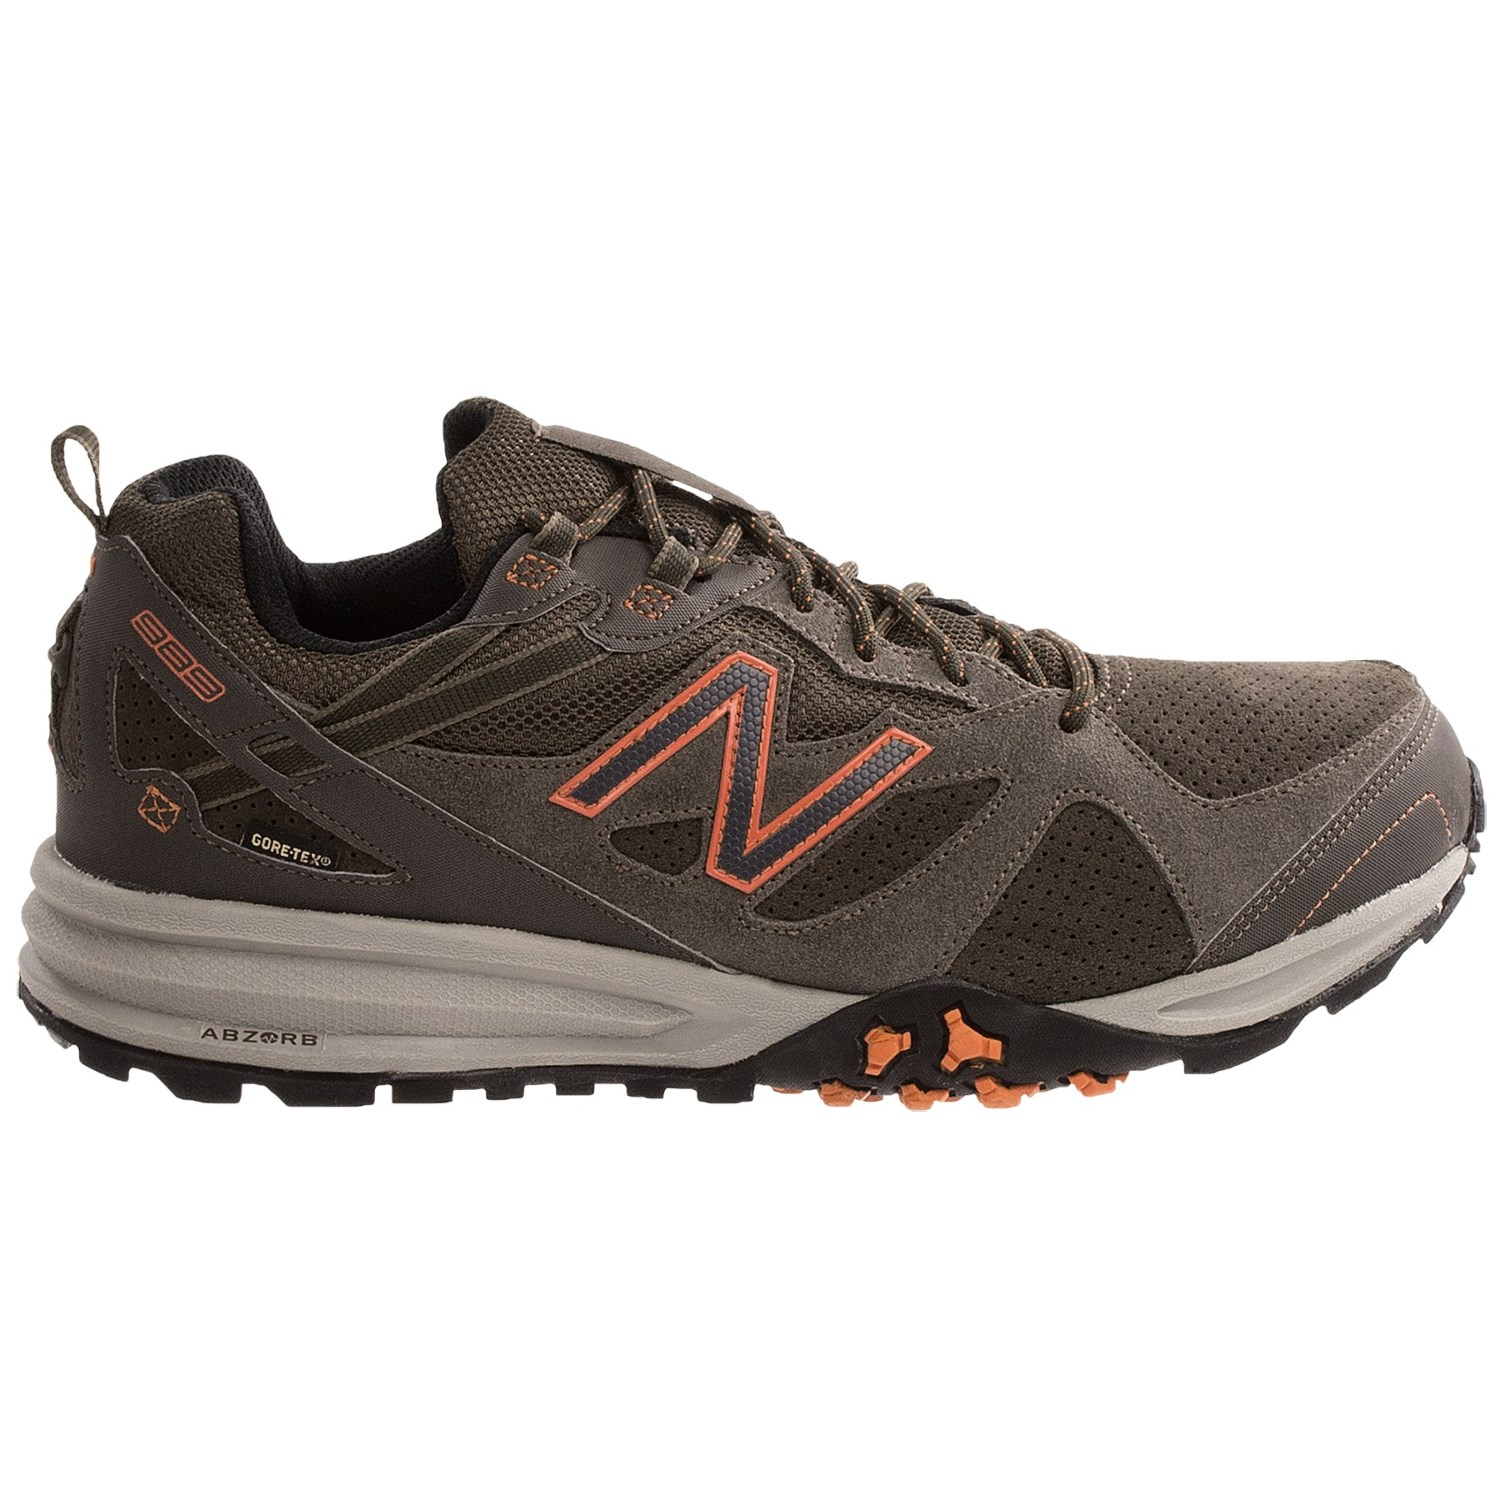 New Balance Waterproof Shoes Gore Tex